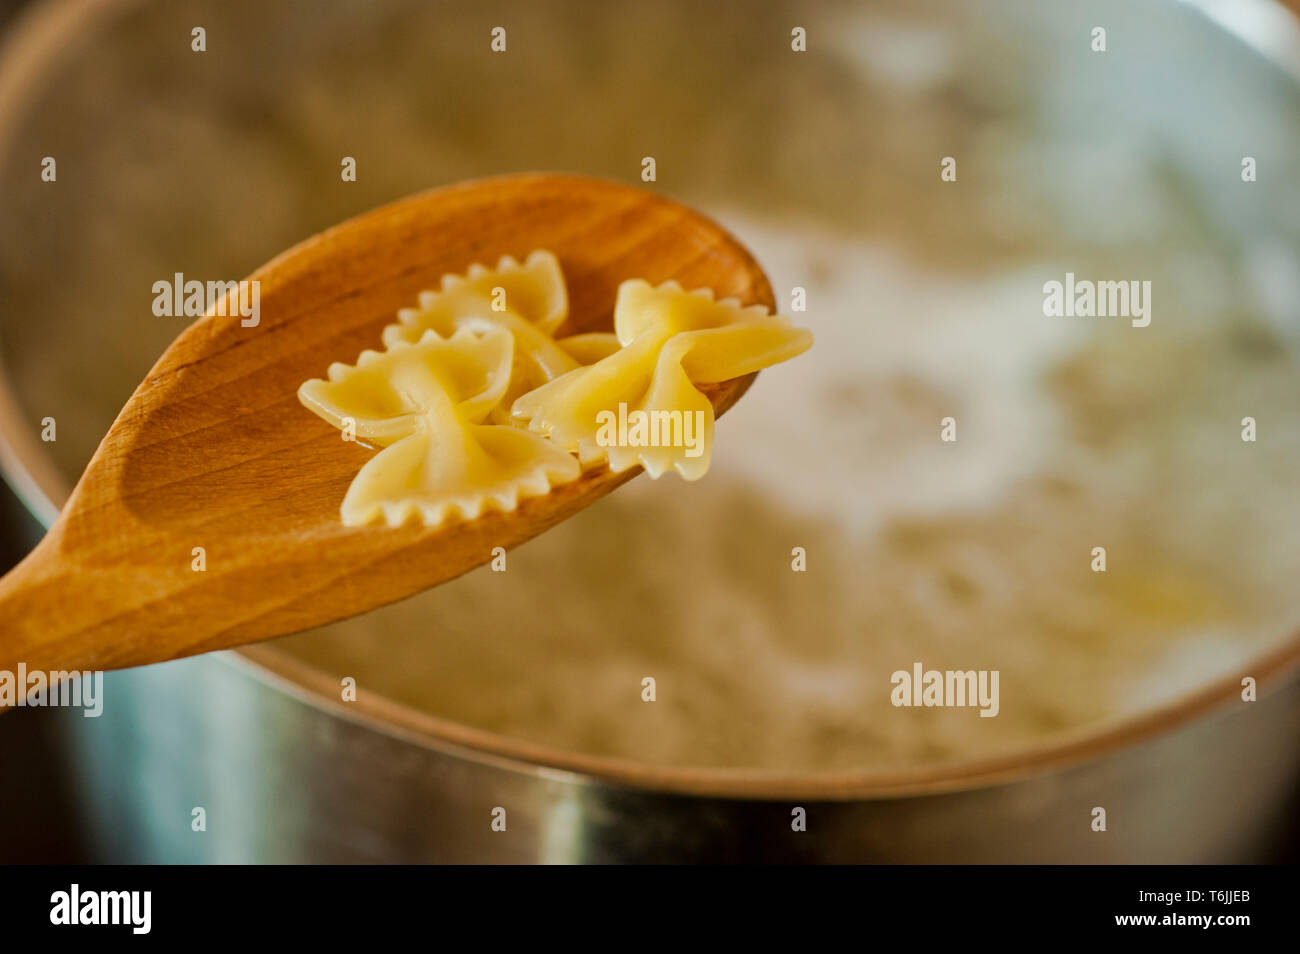 checking the cooking of pasta - Stock Image